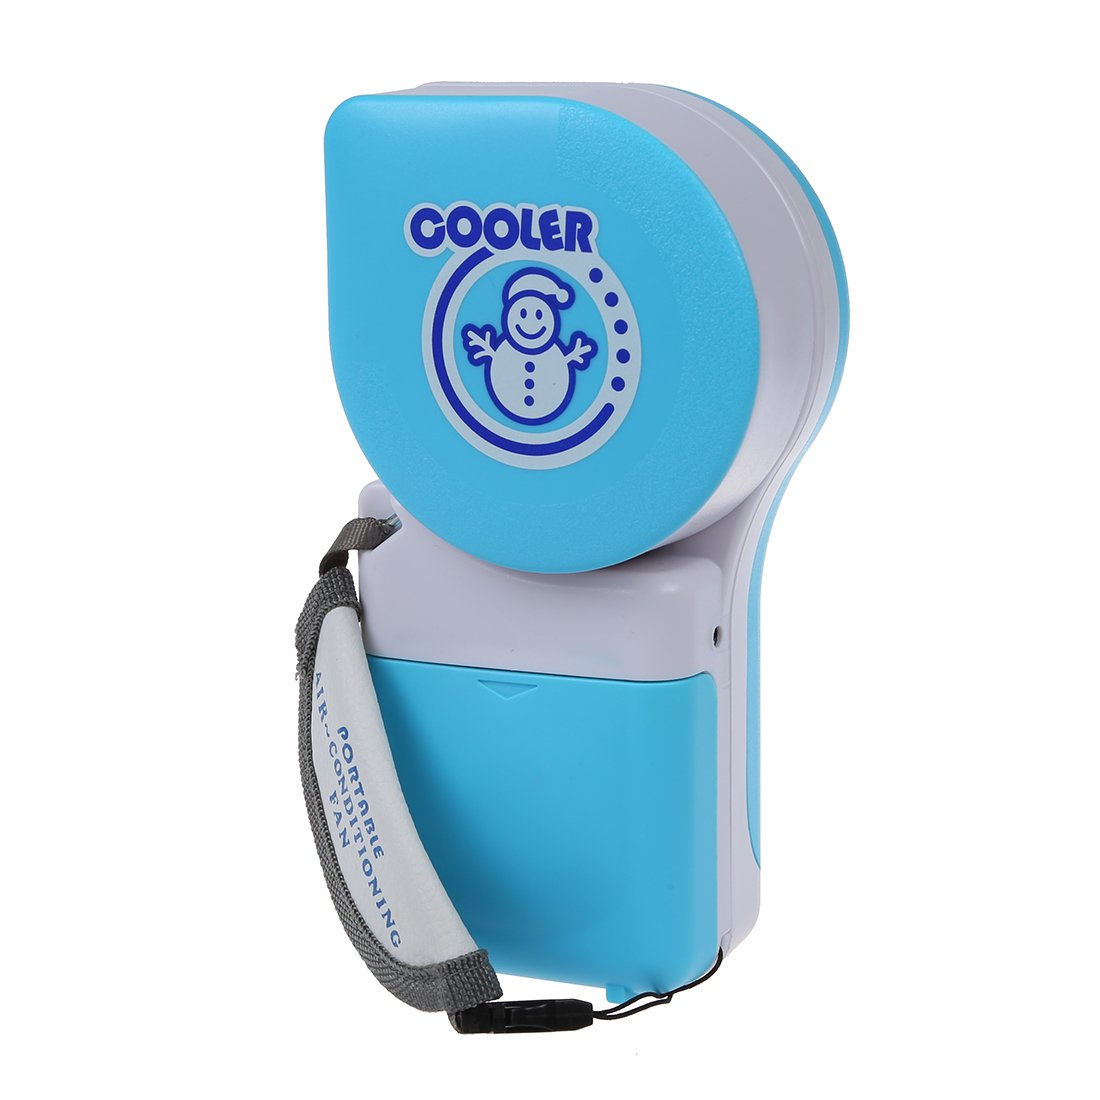 SODIAL(R) Portable Small Fan & Mini-Air Conditioner Handy Cooler Speed Adjustable